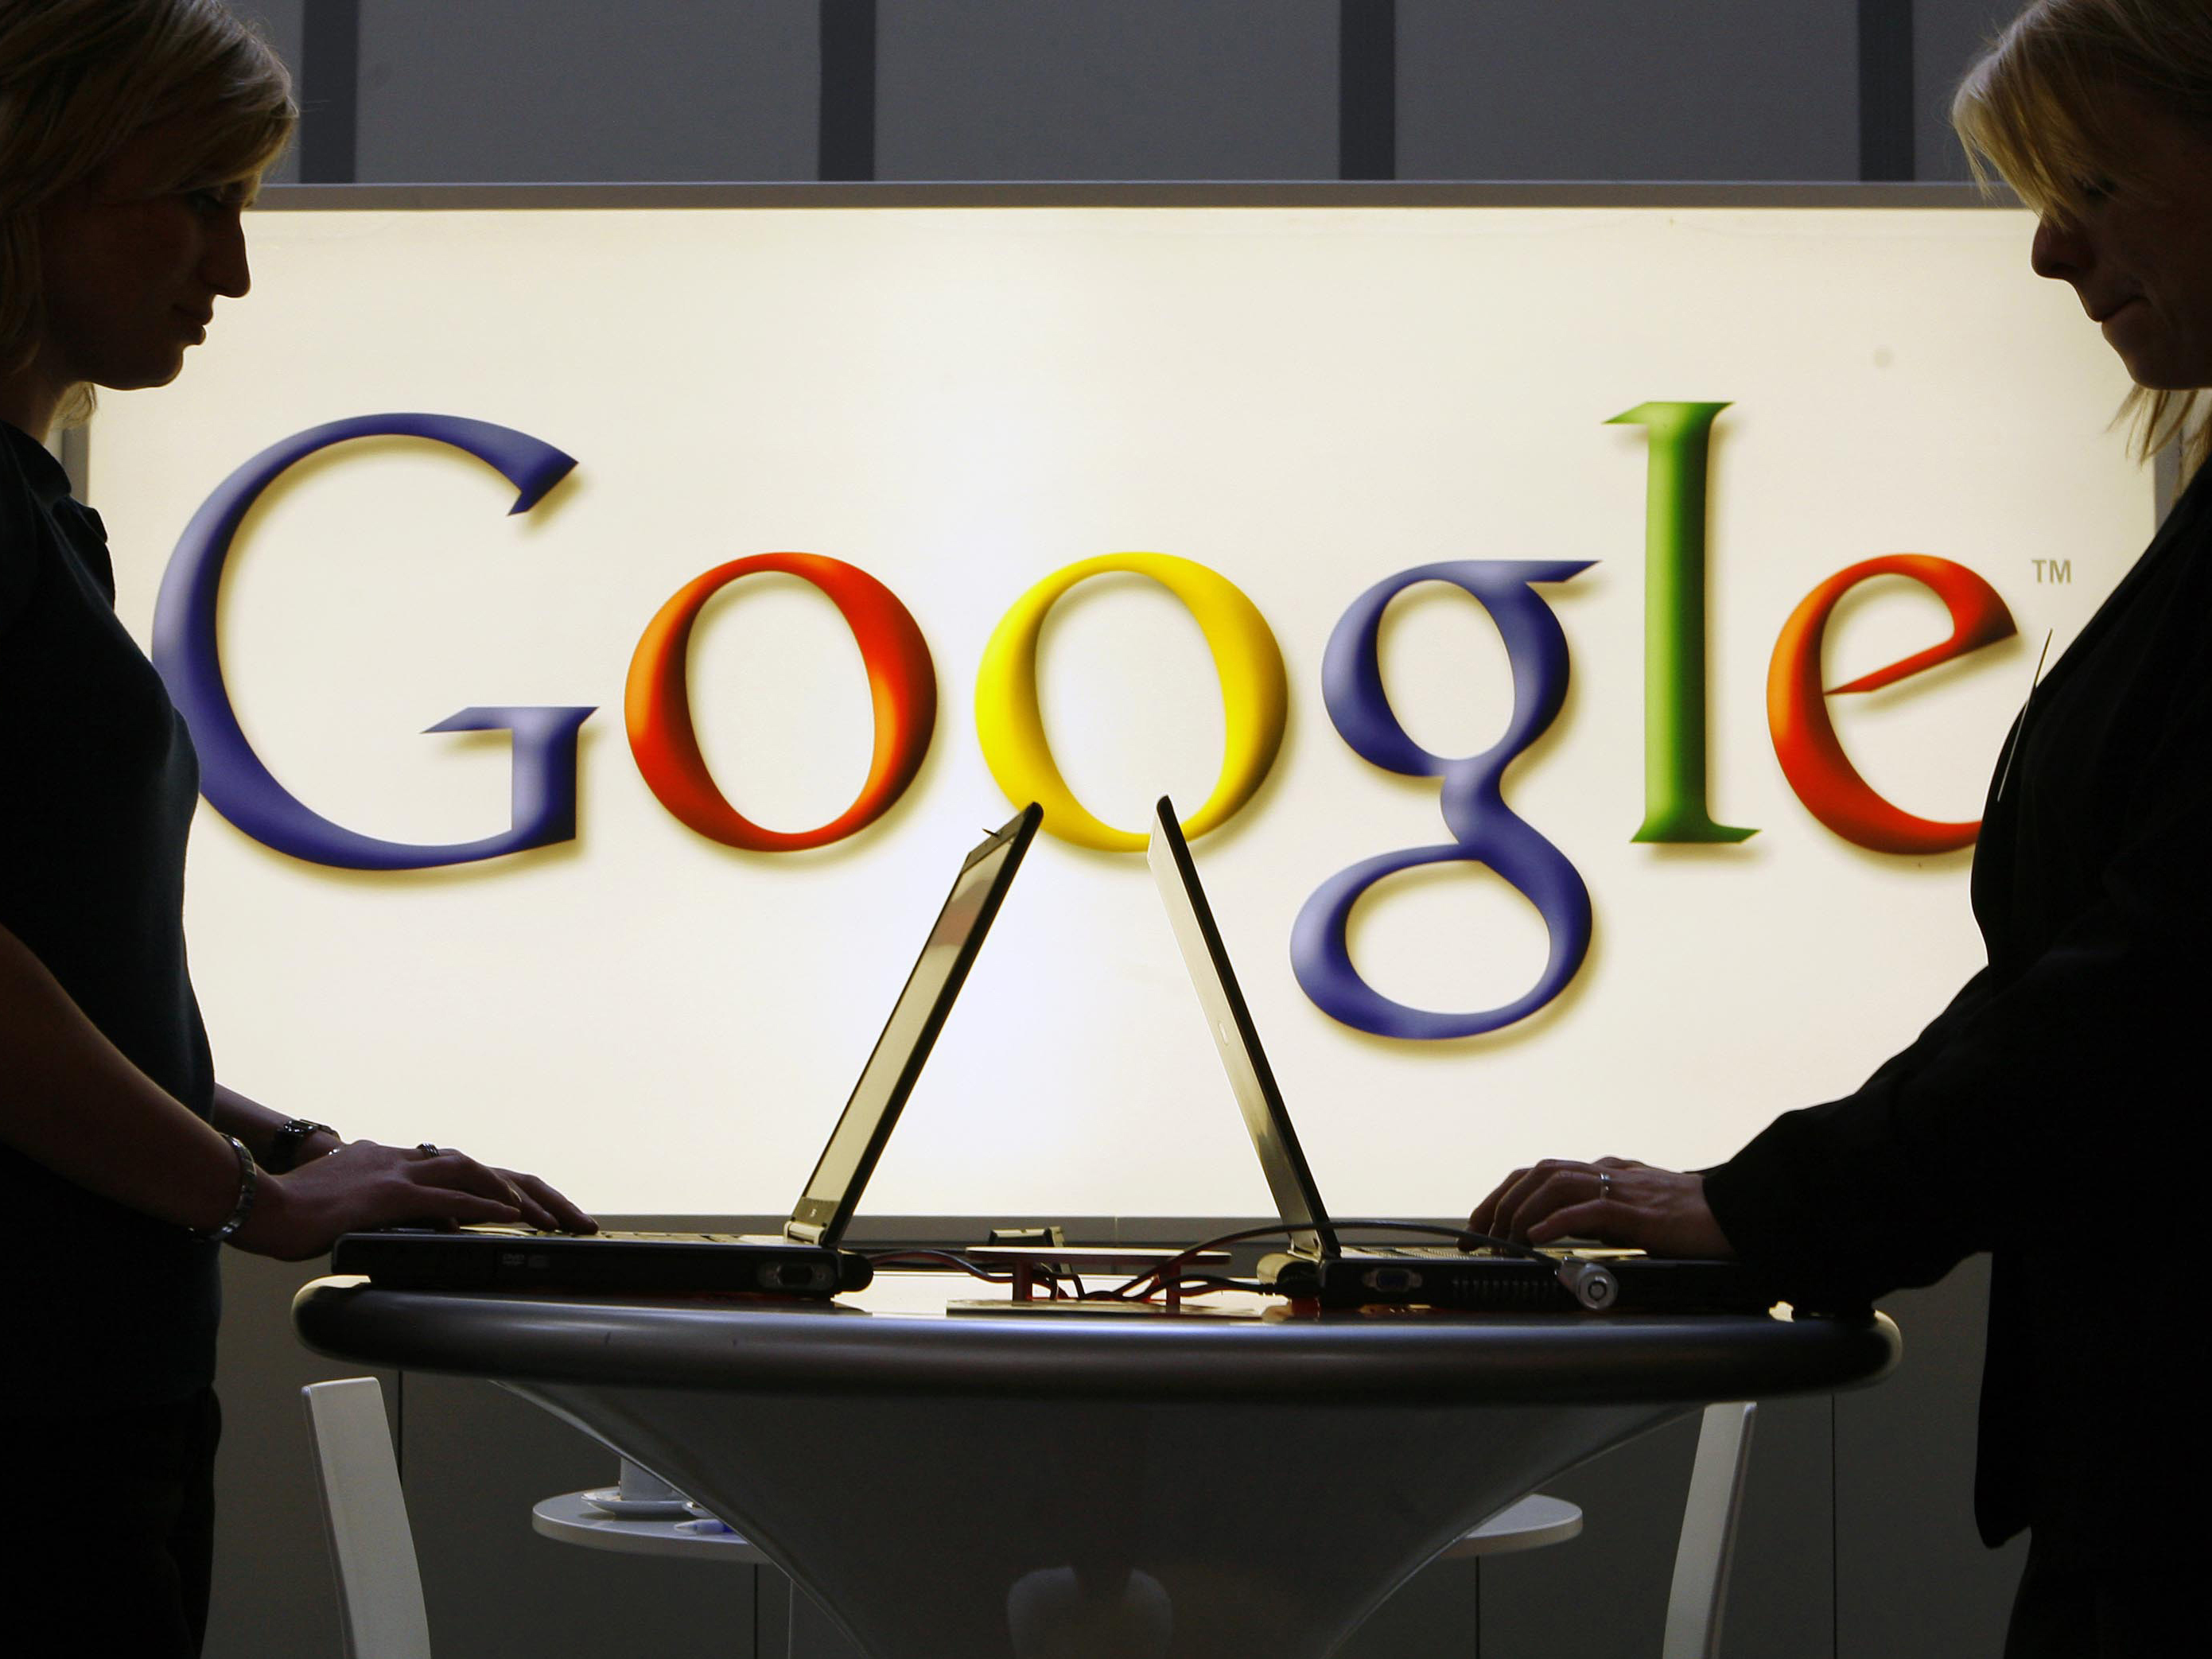 A Sisyphean Task Begins As 'Forget' Requests Roll Into Google